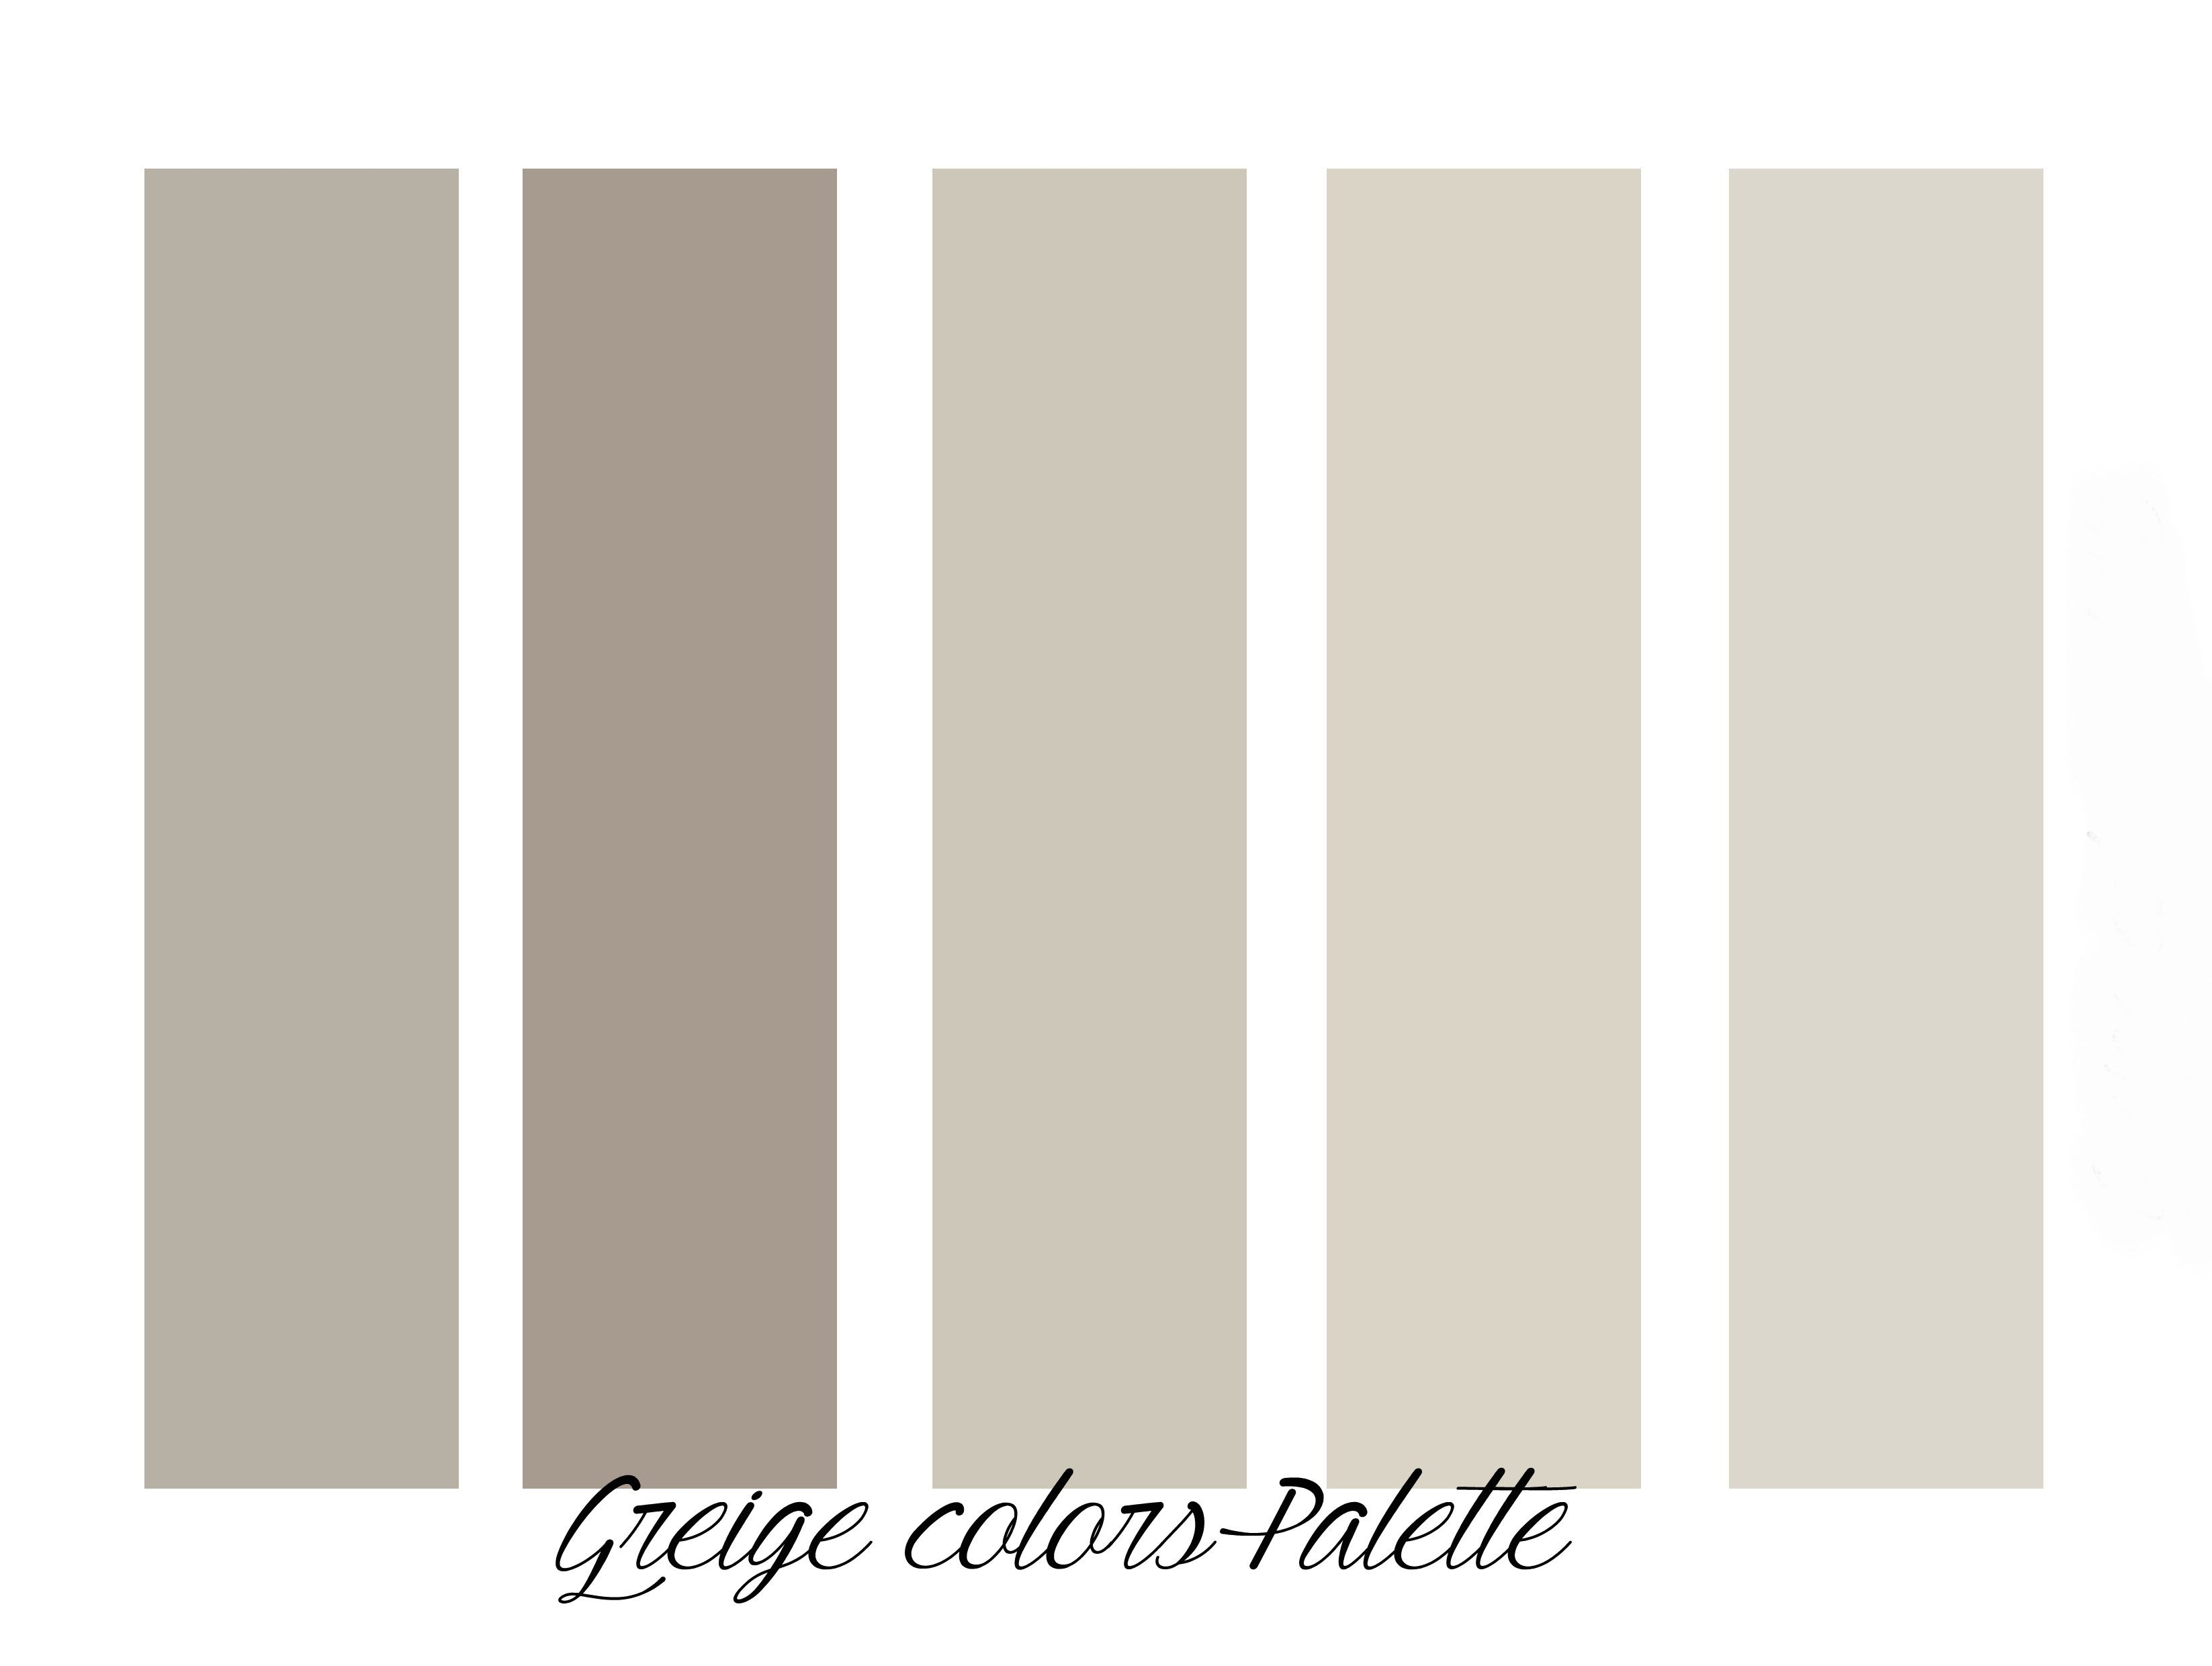 color tortora pantone - Cerca con Google  My home  Pinterest  Search, Http...